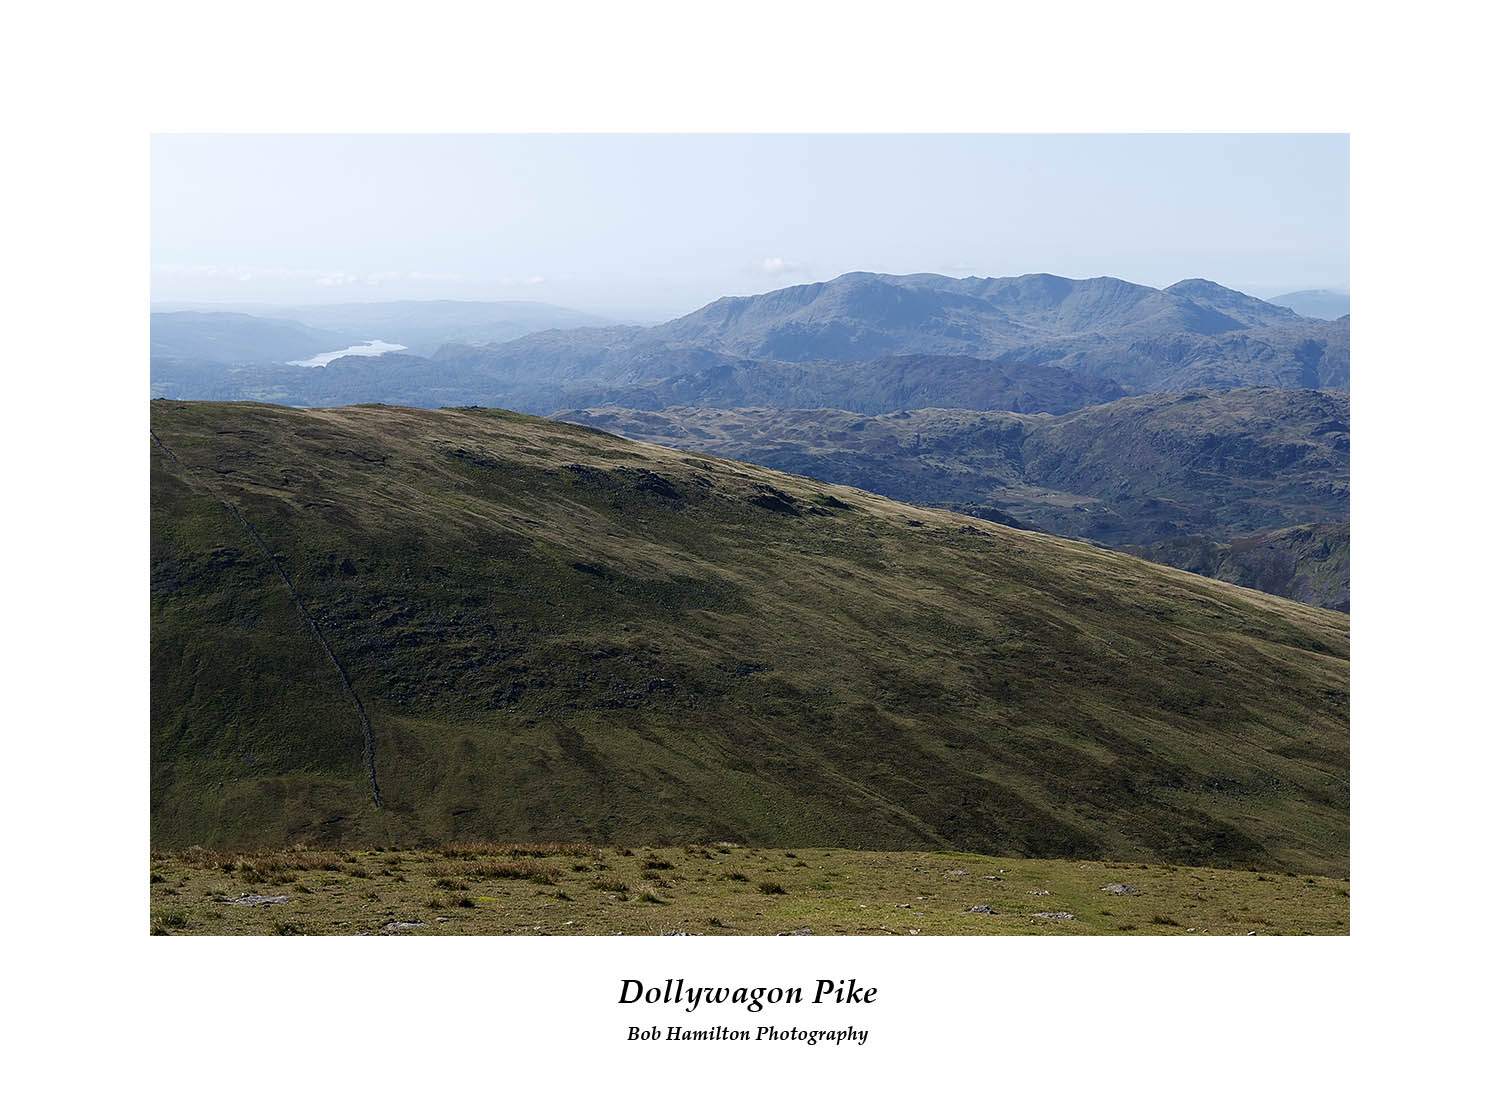 DSF1052 Wetherlam Coniston Old Man and Coniston Water from Dollywagon Pike